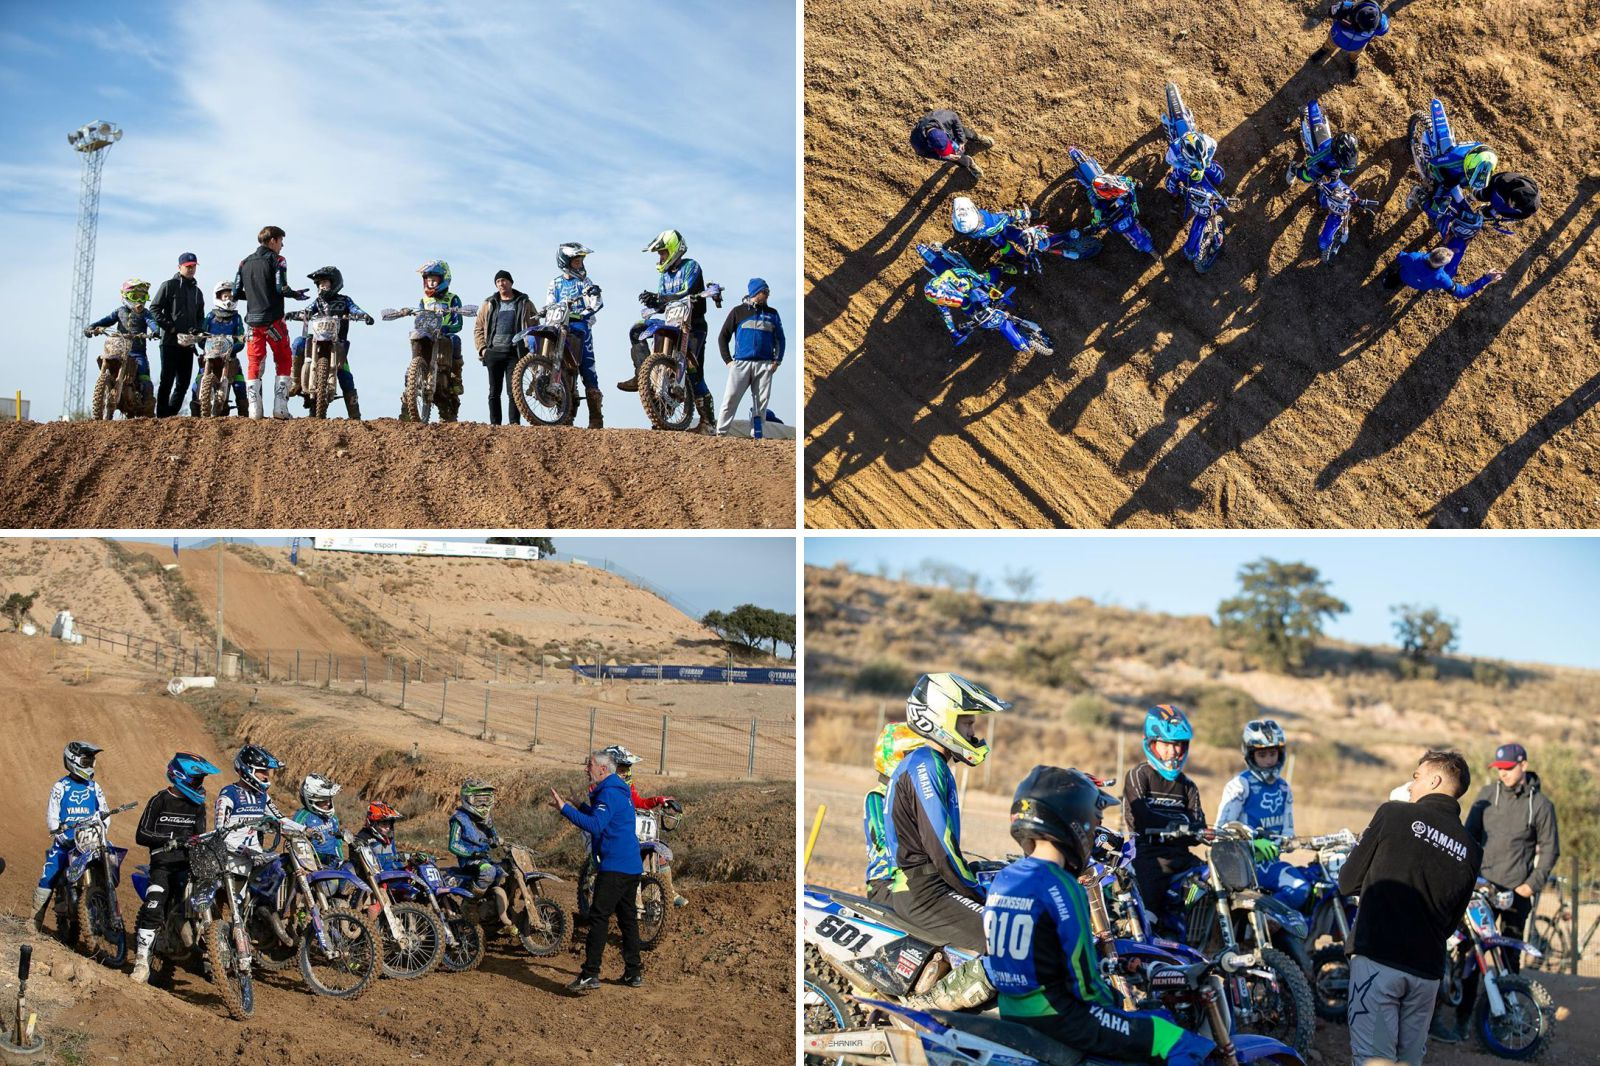 motocross racing yamaha europe